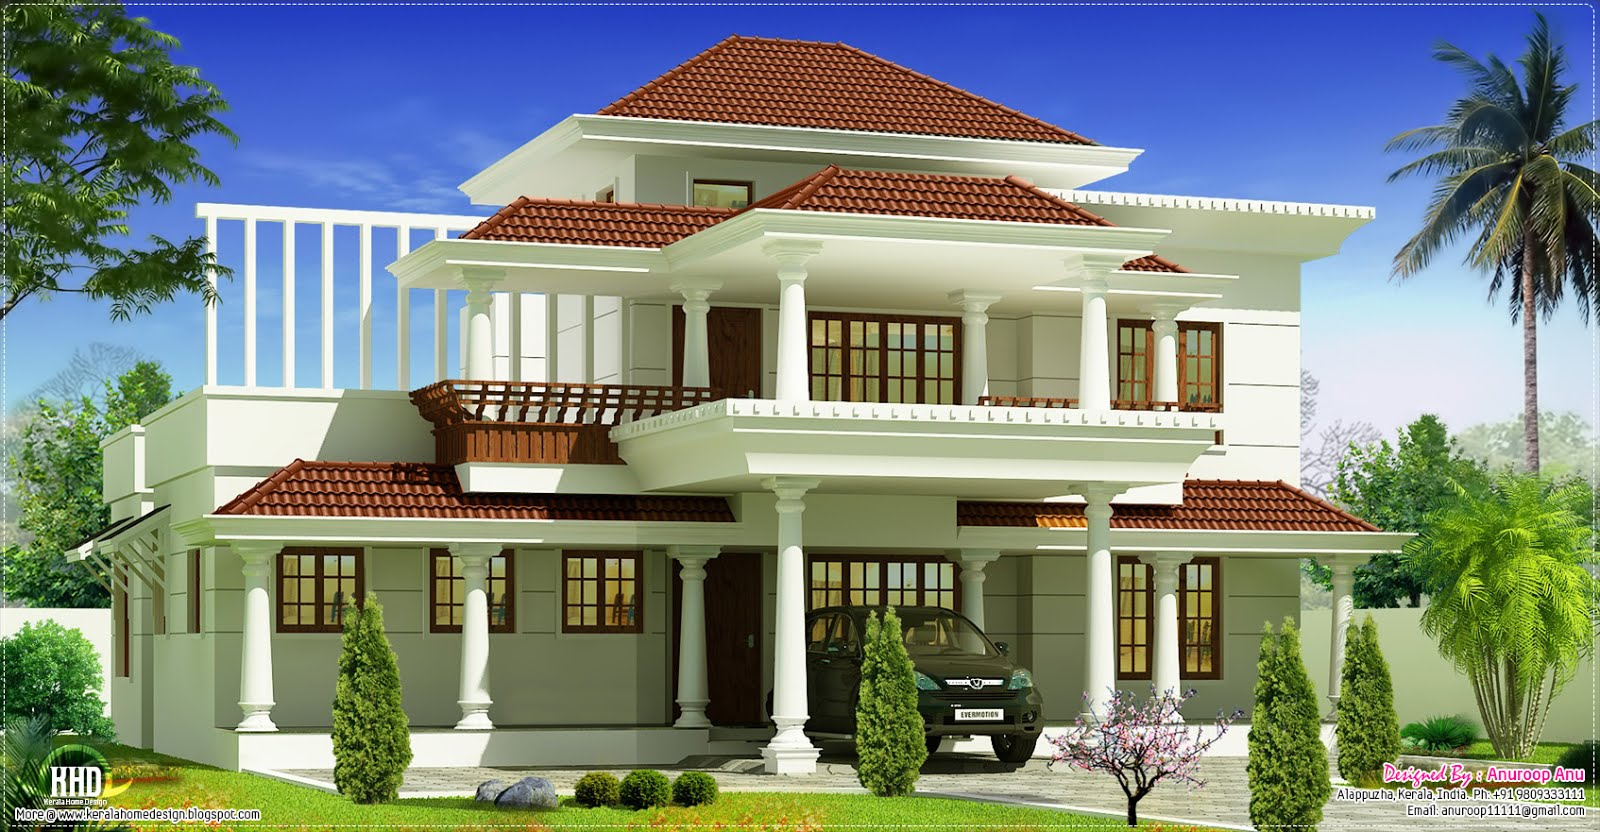 January 2013 kerala home design and floor plans Small home models pictures